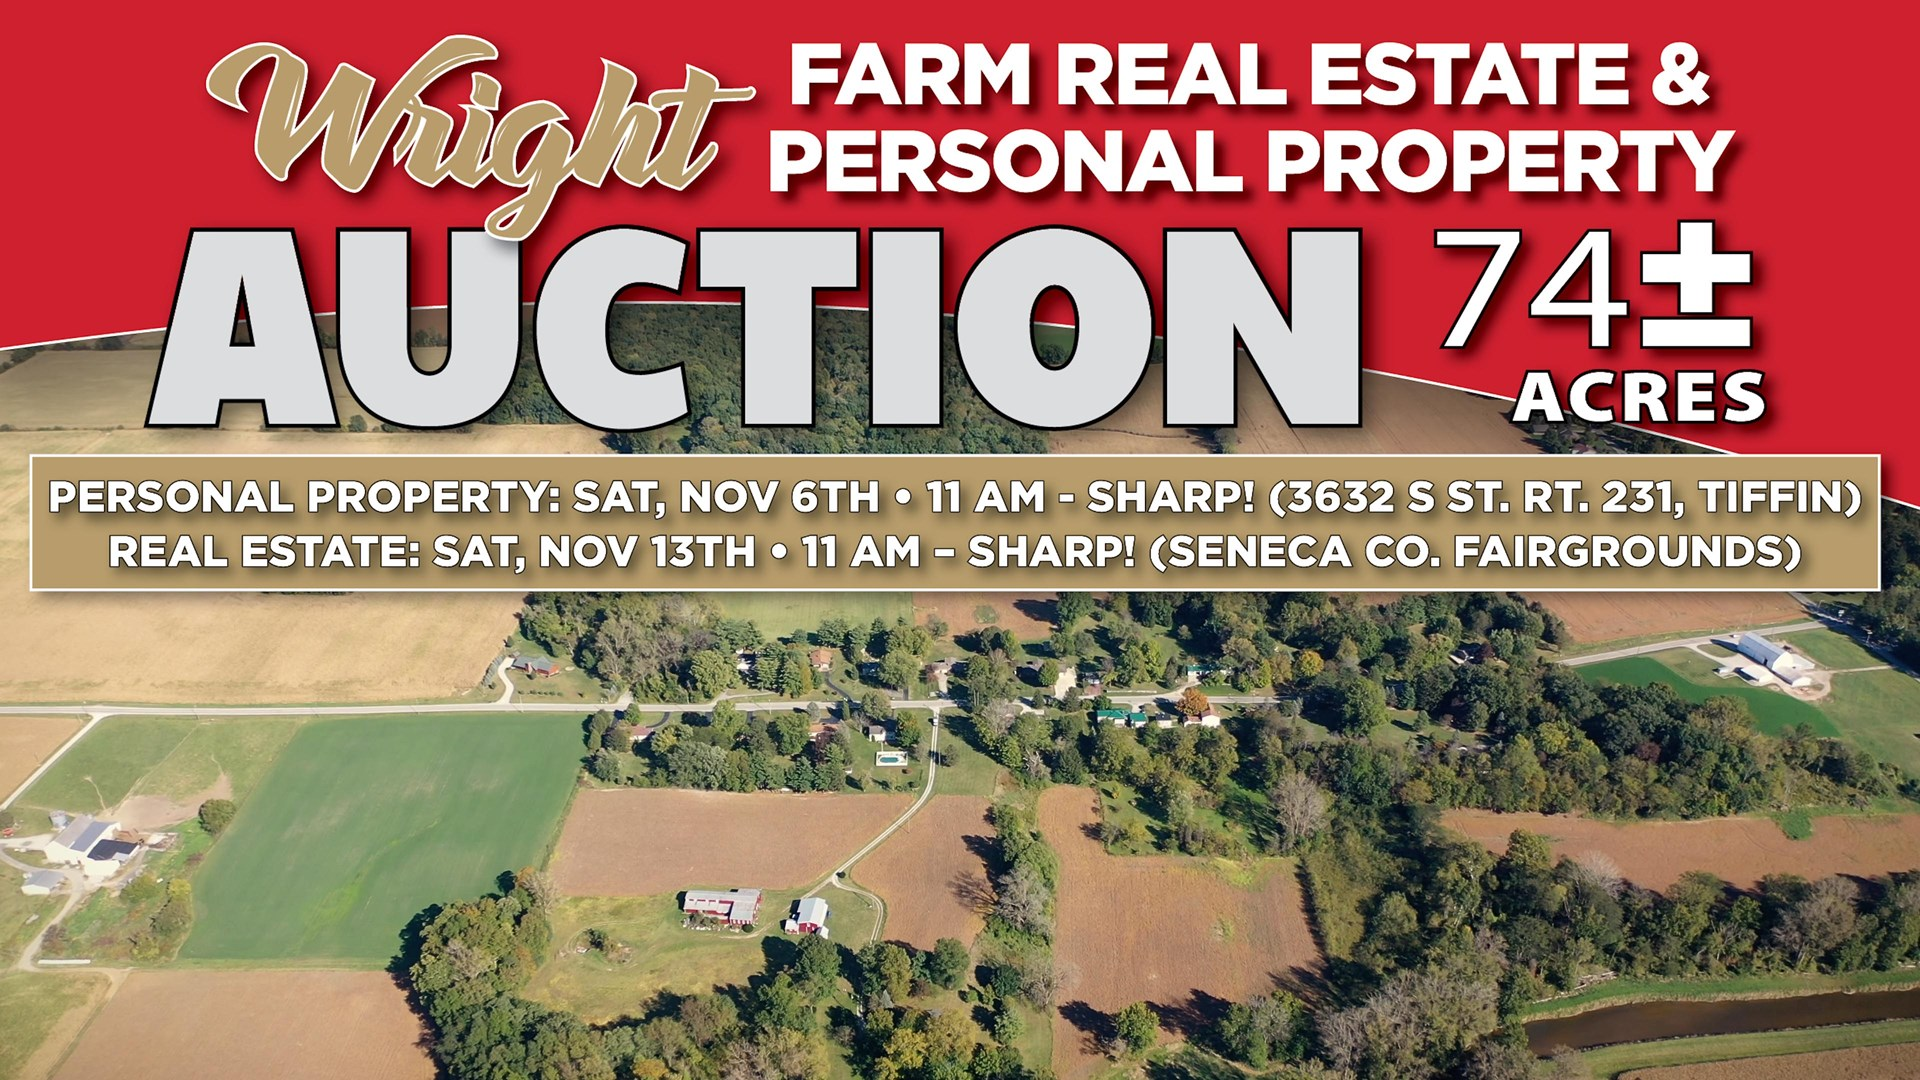 WRIGHT REAL ESTATE AUCTION- Nov. 13th at 11AM